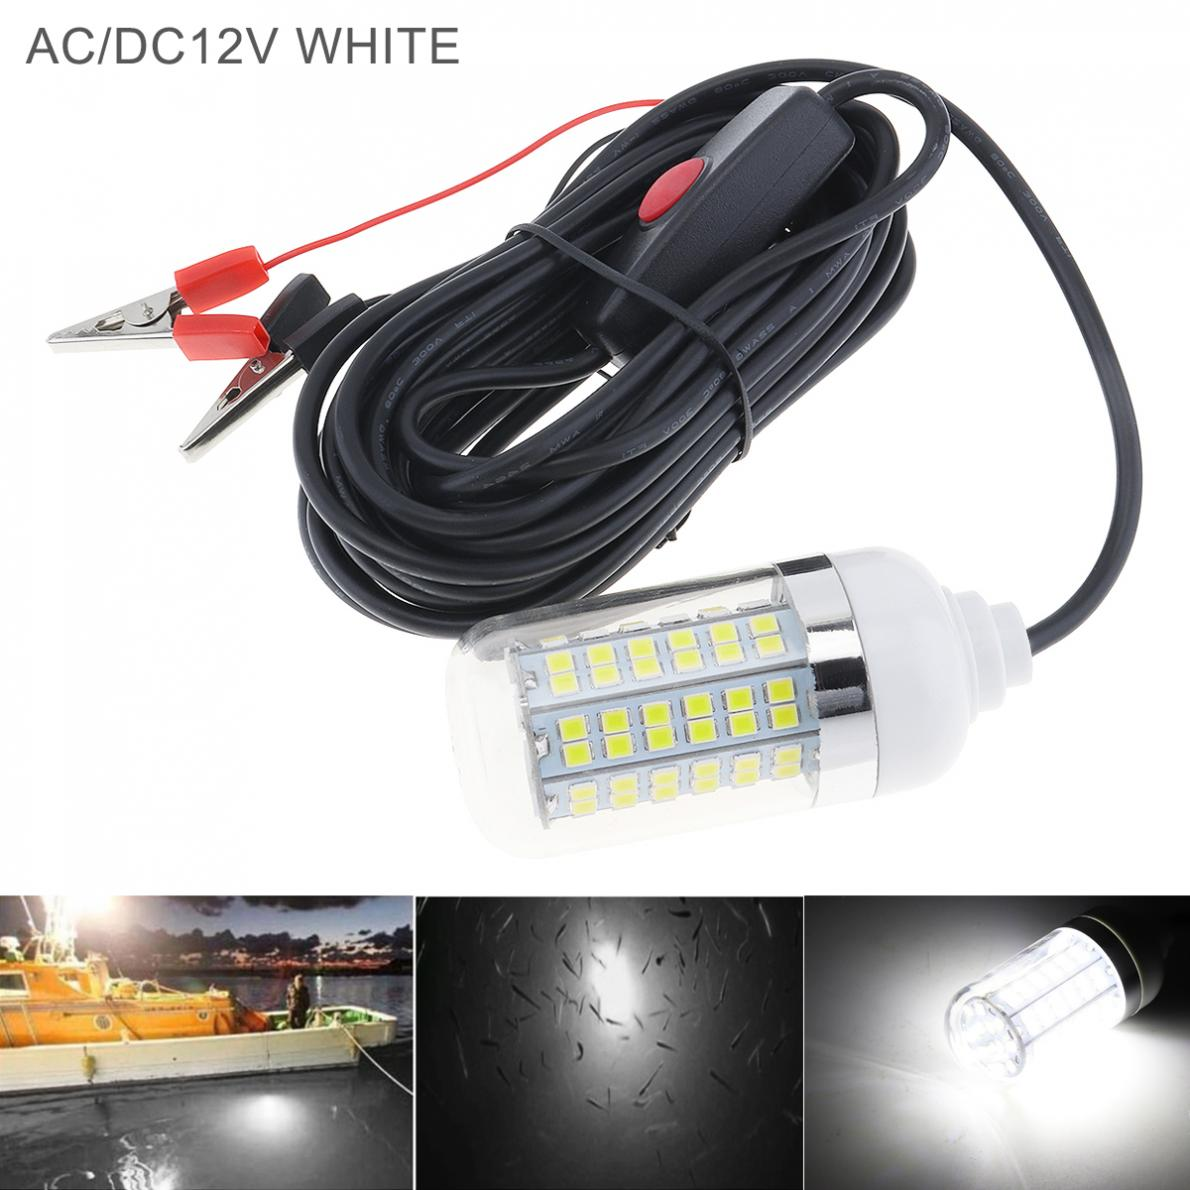 15W 12V Fishing White Light 108pcs 2835 LED Underwater Fishing Light / Lures Fish Finder Lamp Attracts Prawns / Squid / Krill